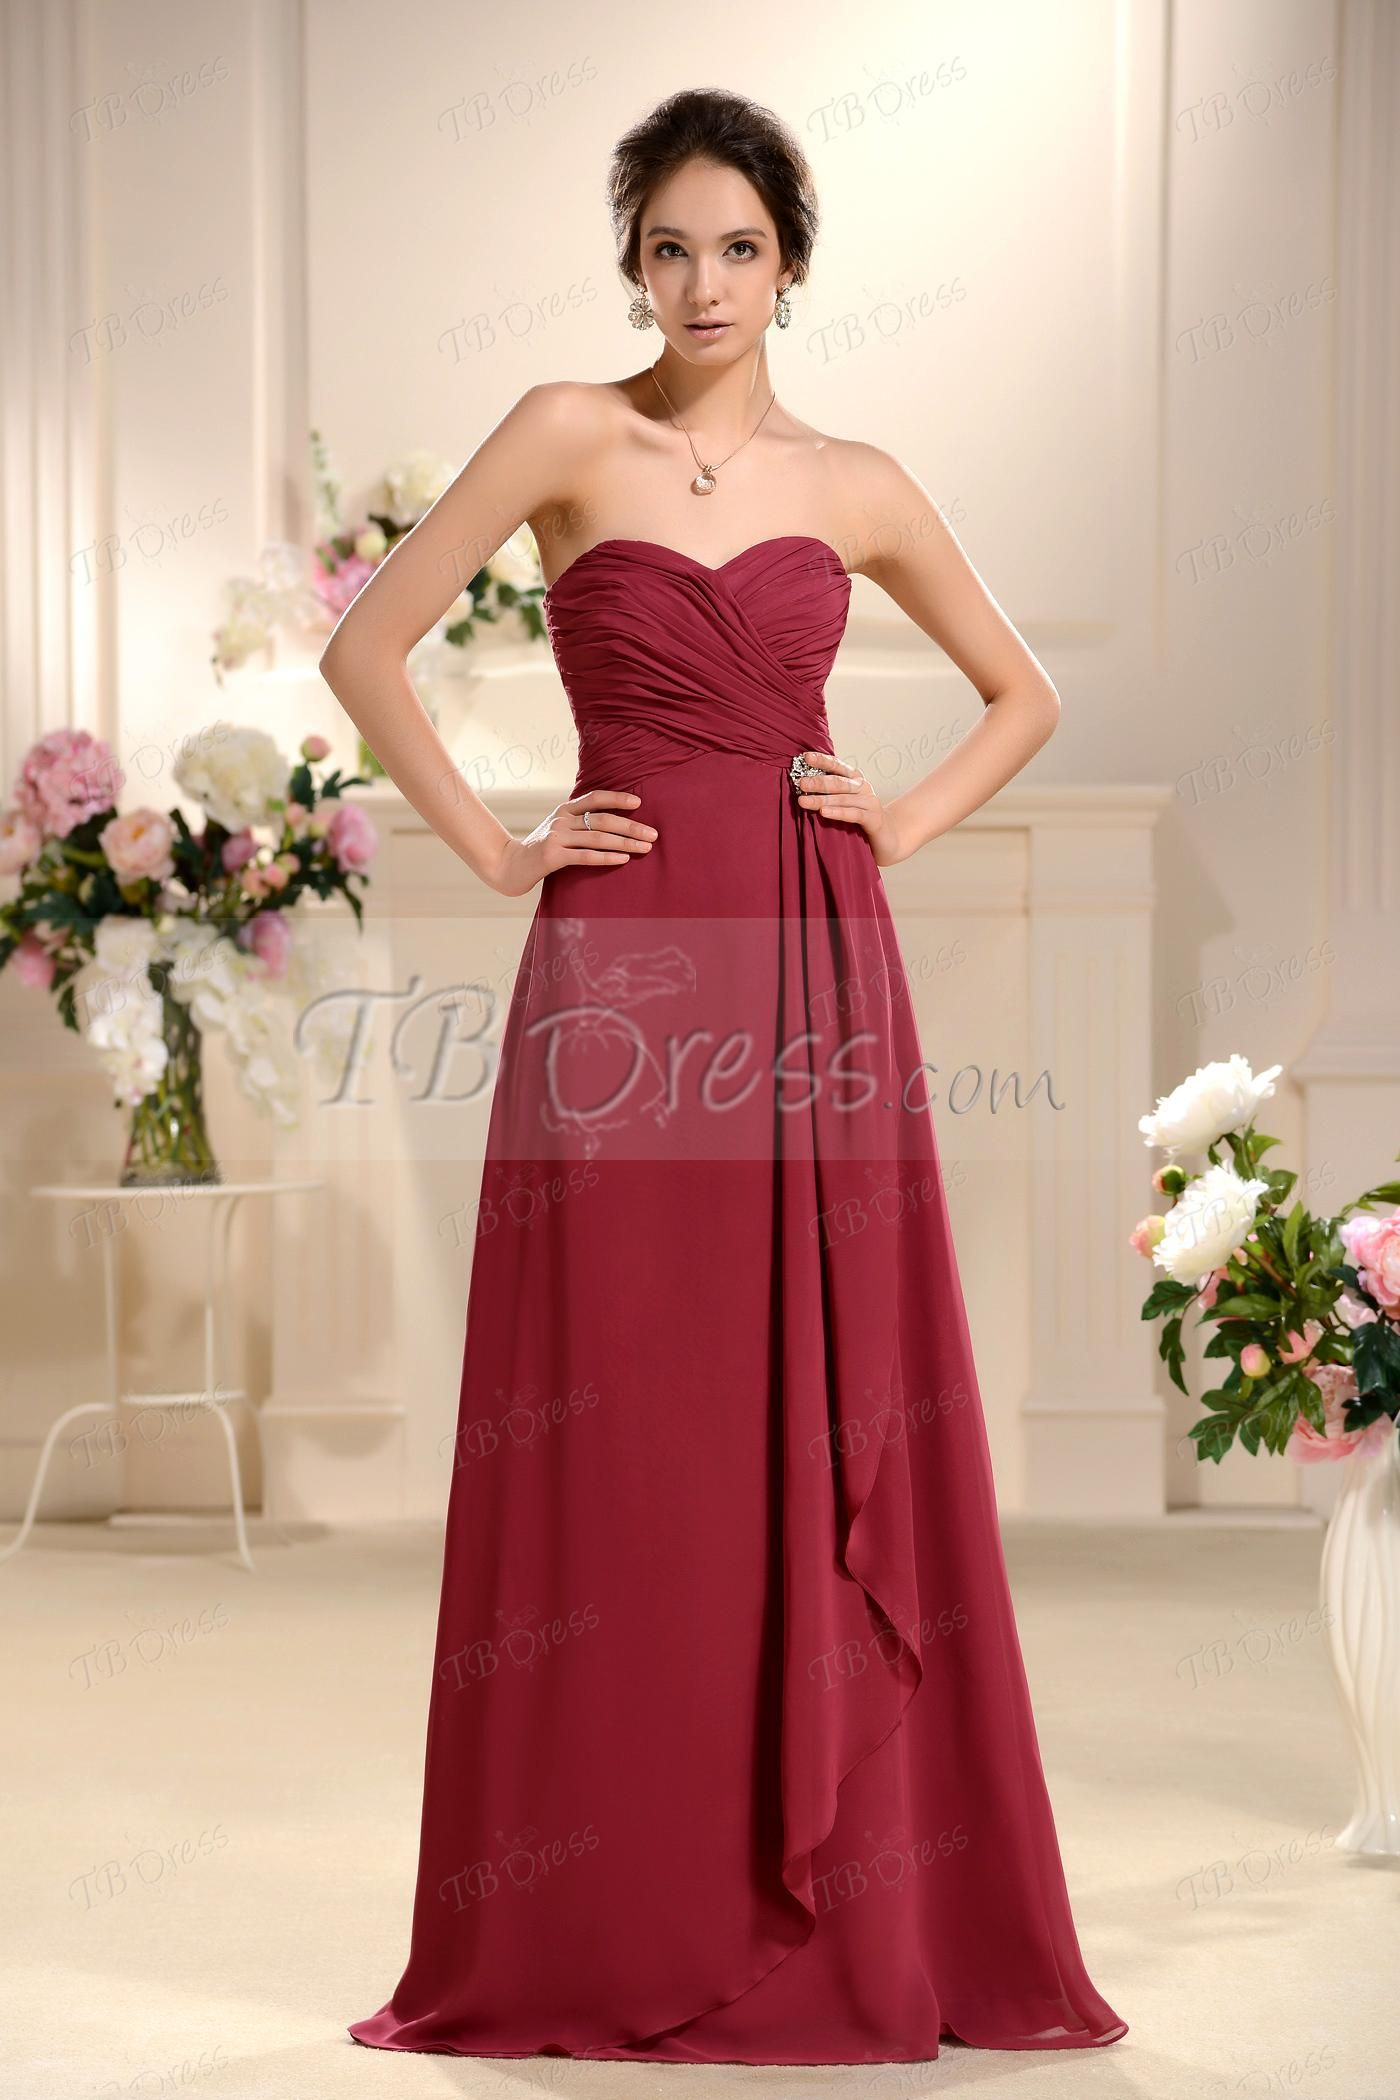 Sweetheart neckline bridesmaidprom dress neckline prom and charming sweetheart neckline new style bridesmaidprom dress ombrellifo Image collections